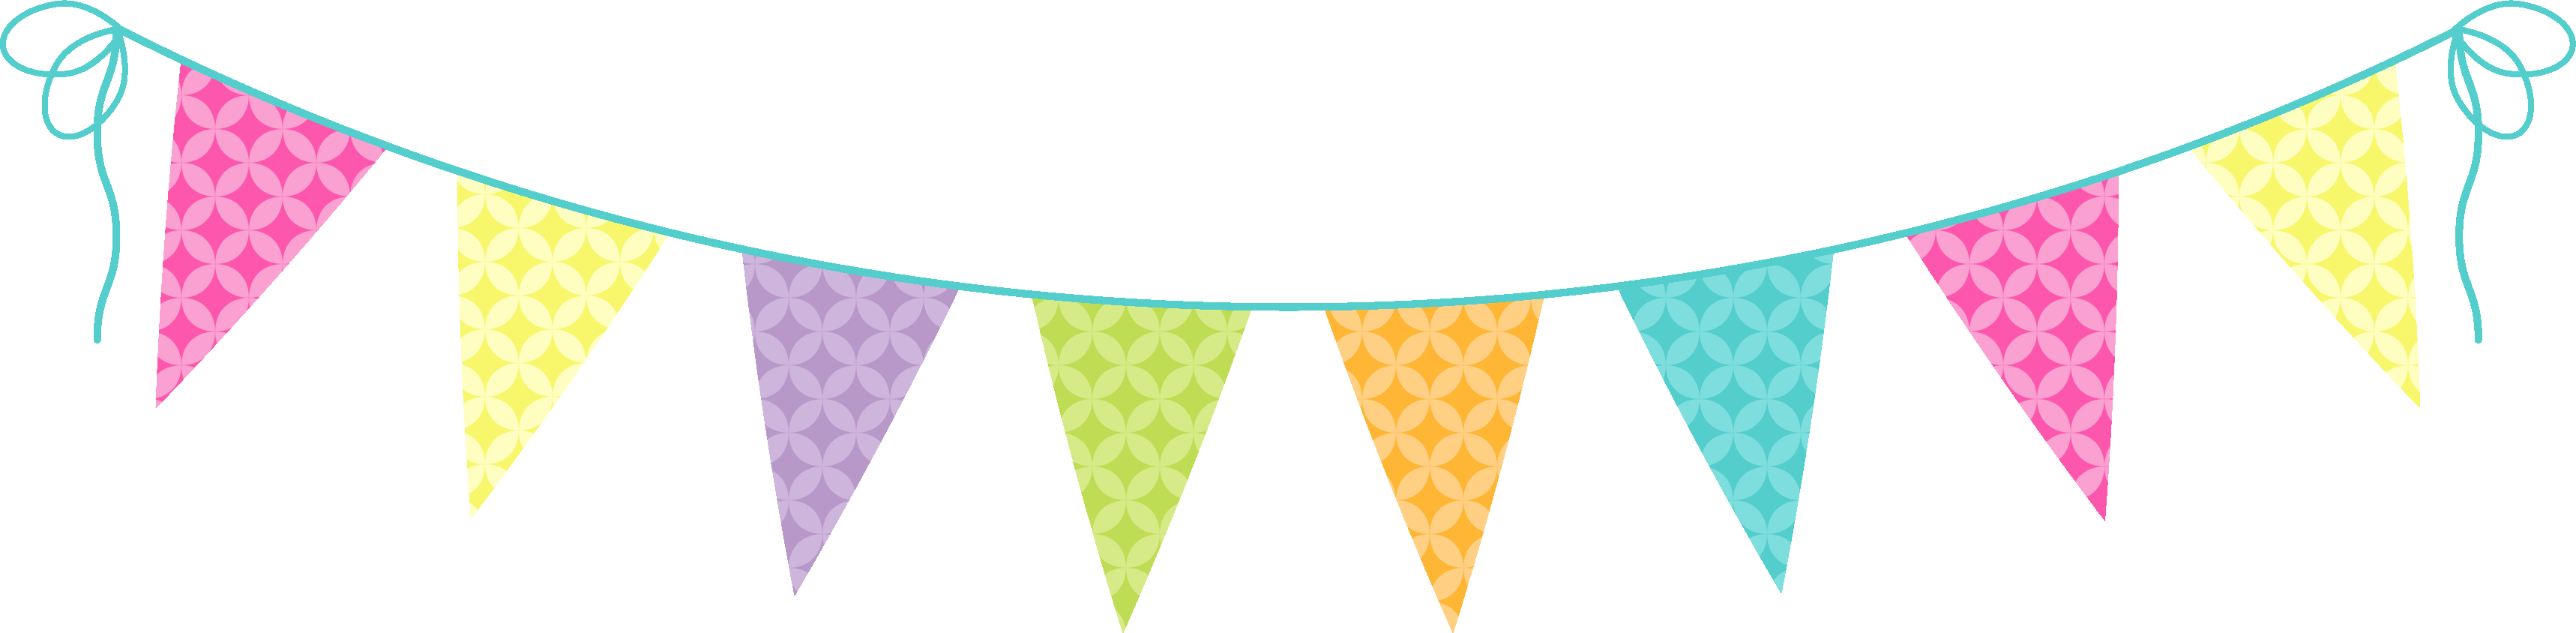 Party Banners Clipart.